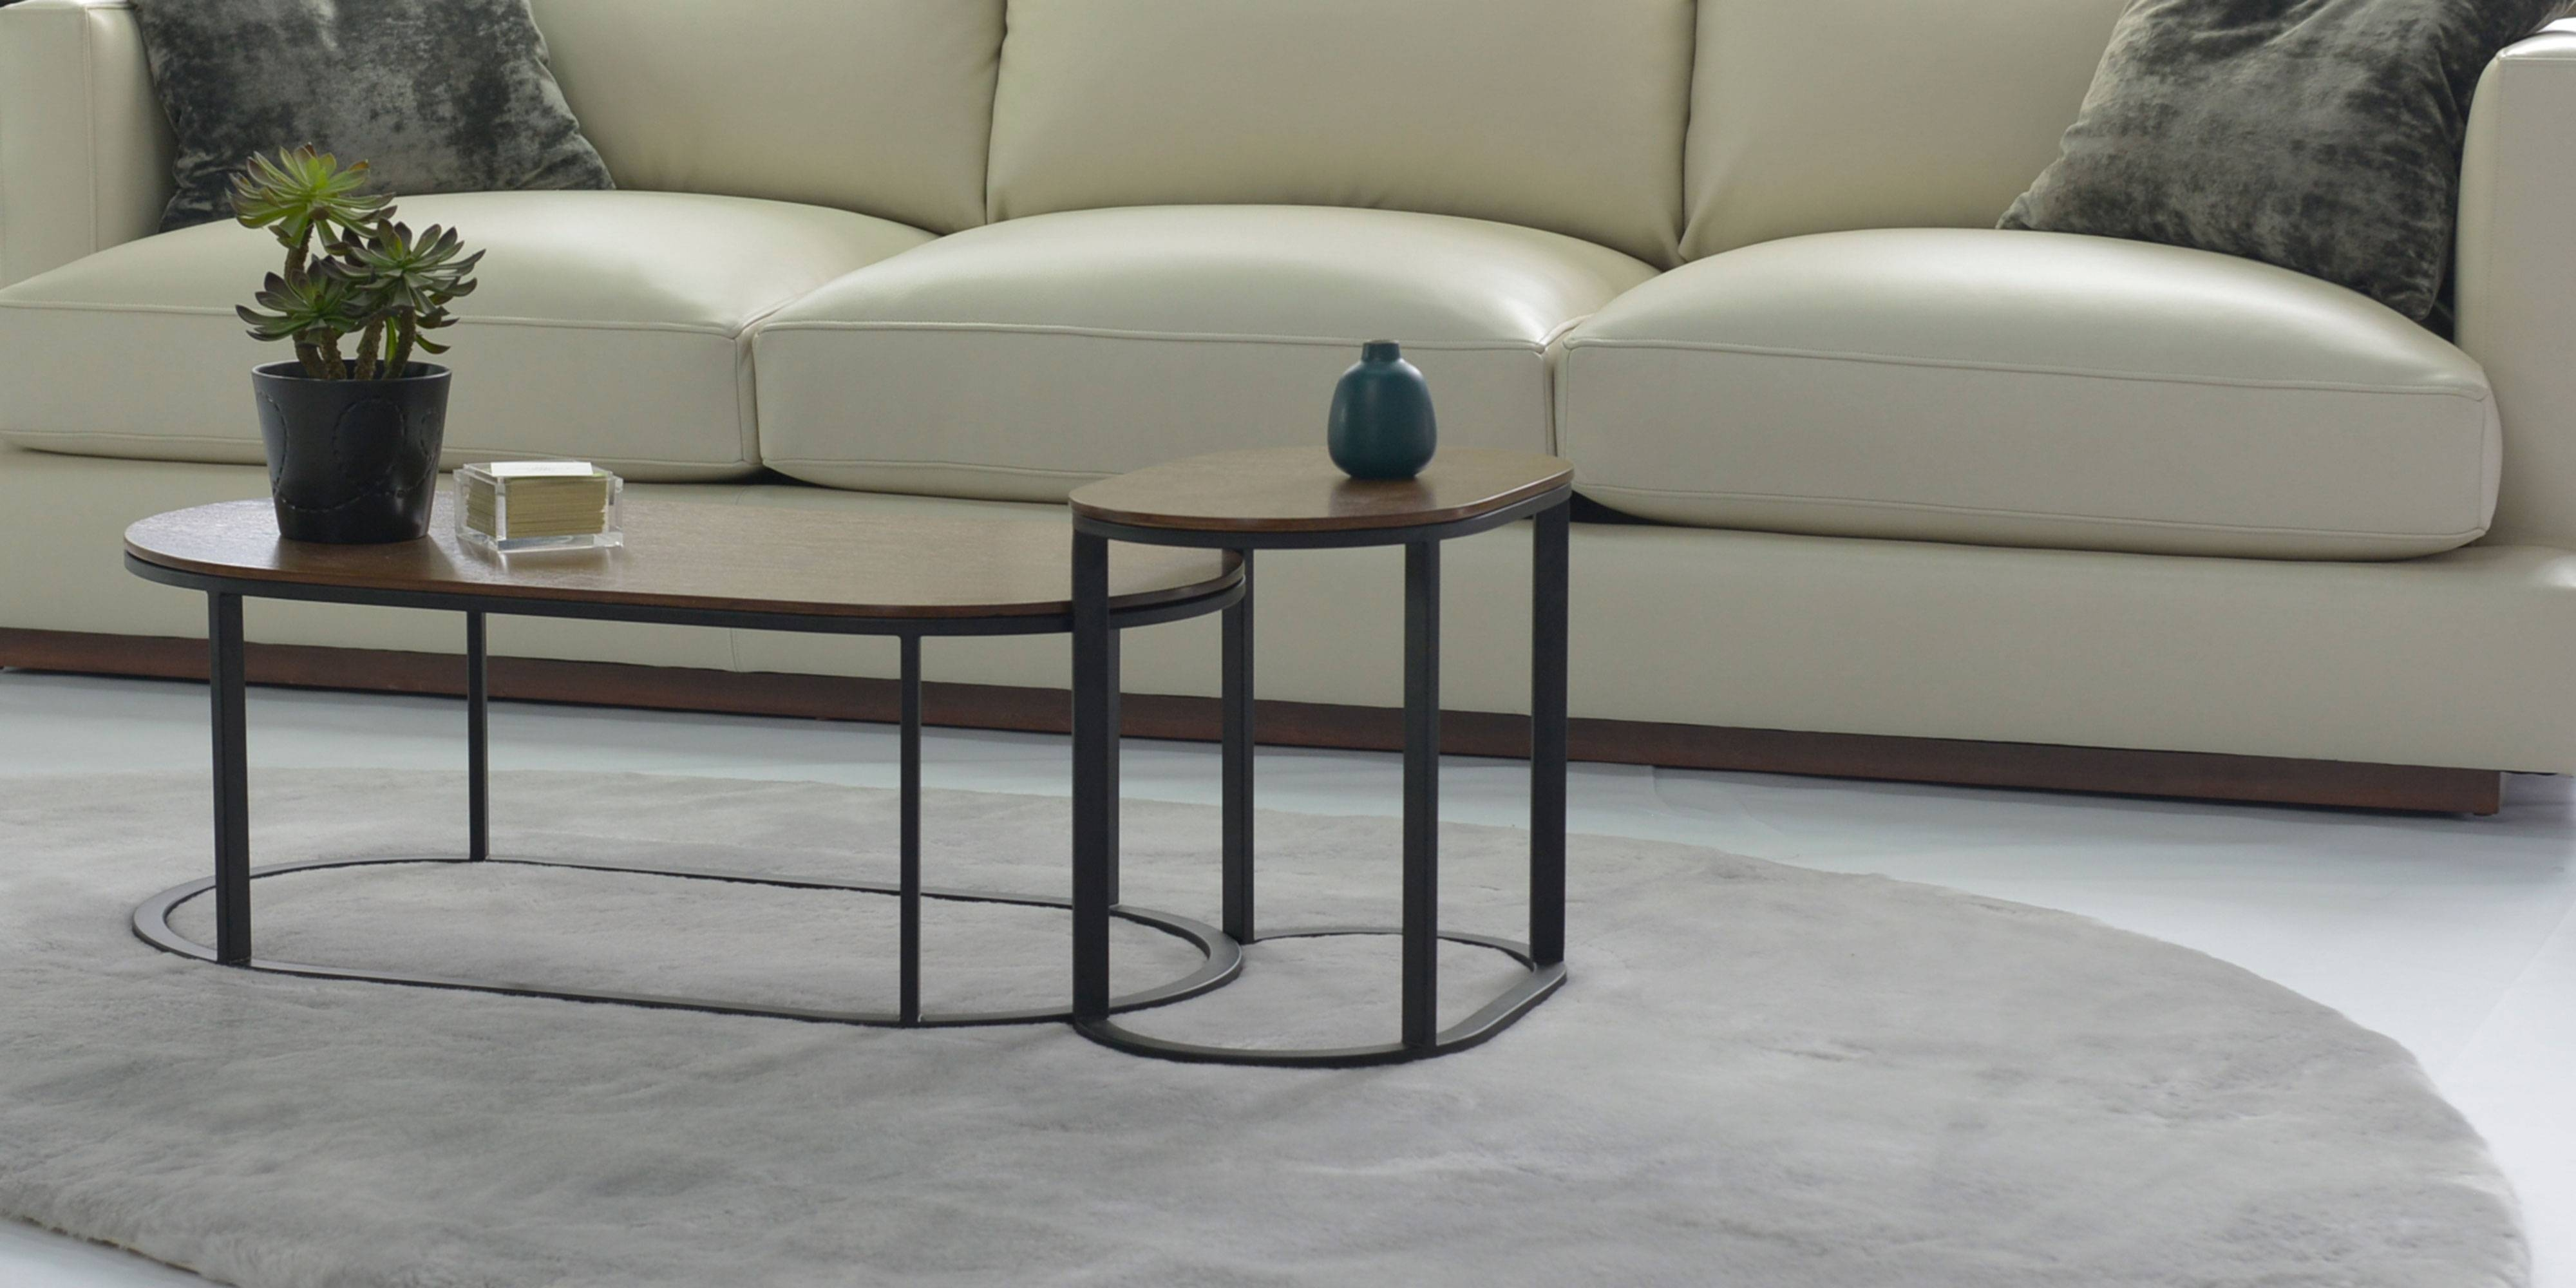 Torino - Nathan Anthony Furniture for Torino Coffee Tables (Image 15 of 30)